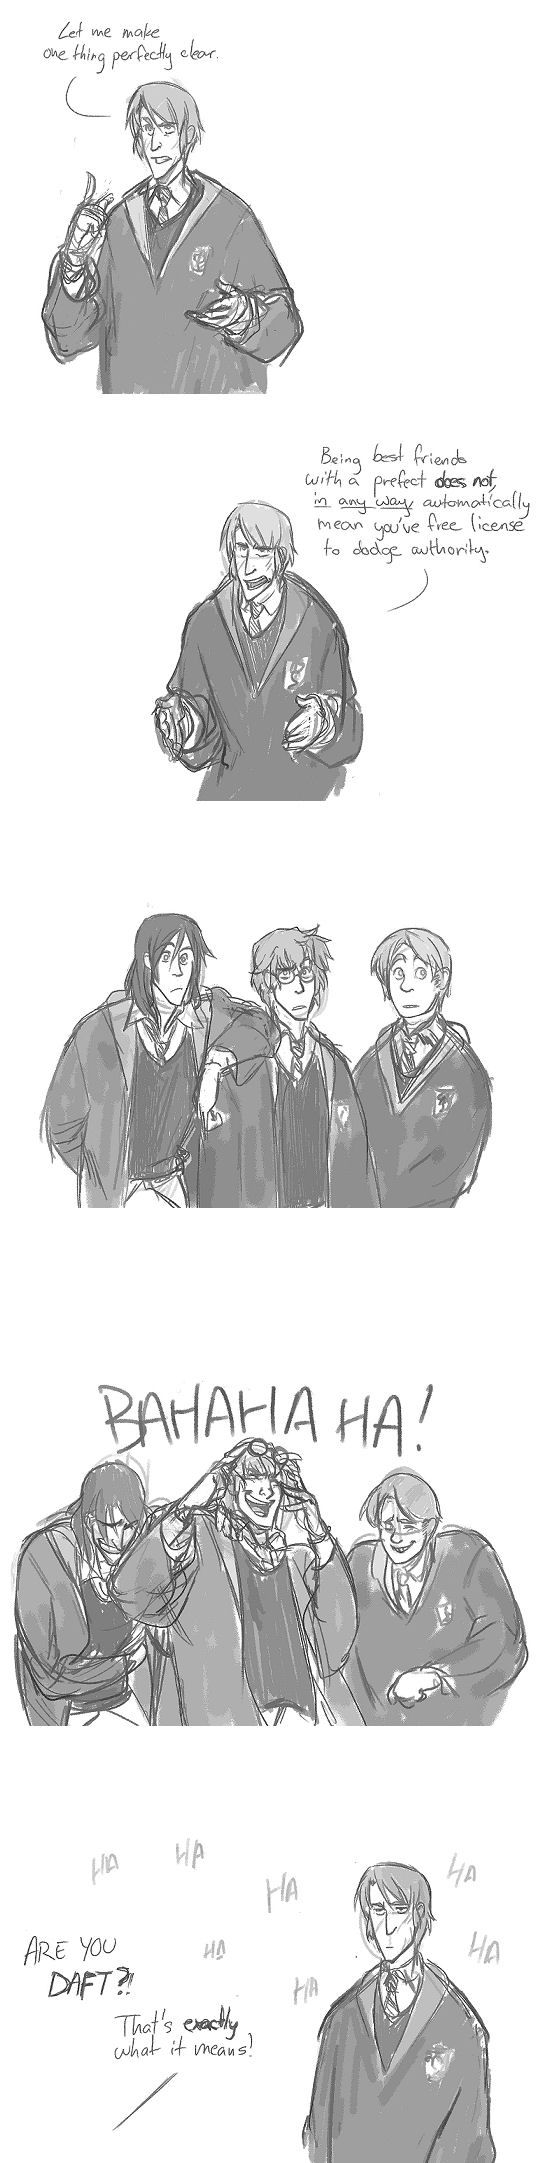 Lupin's logic was Dumbledore's logic...which didn't work out quite the way he planned...